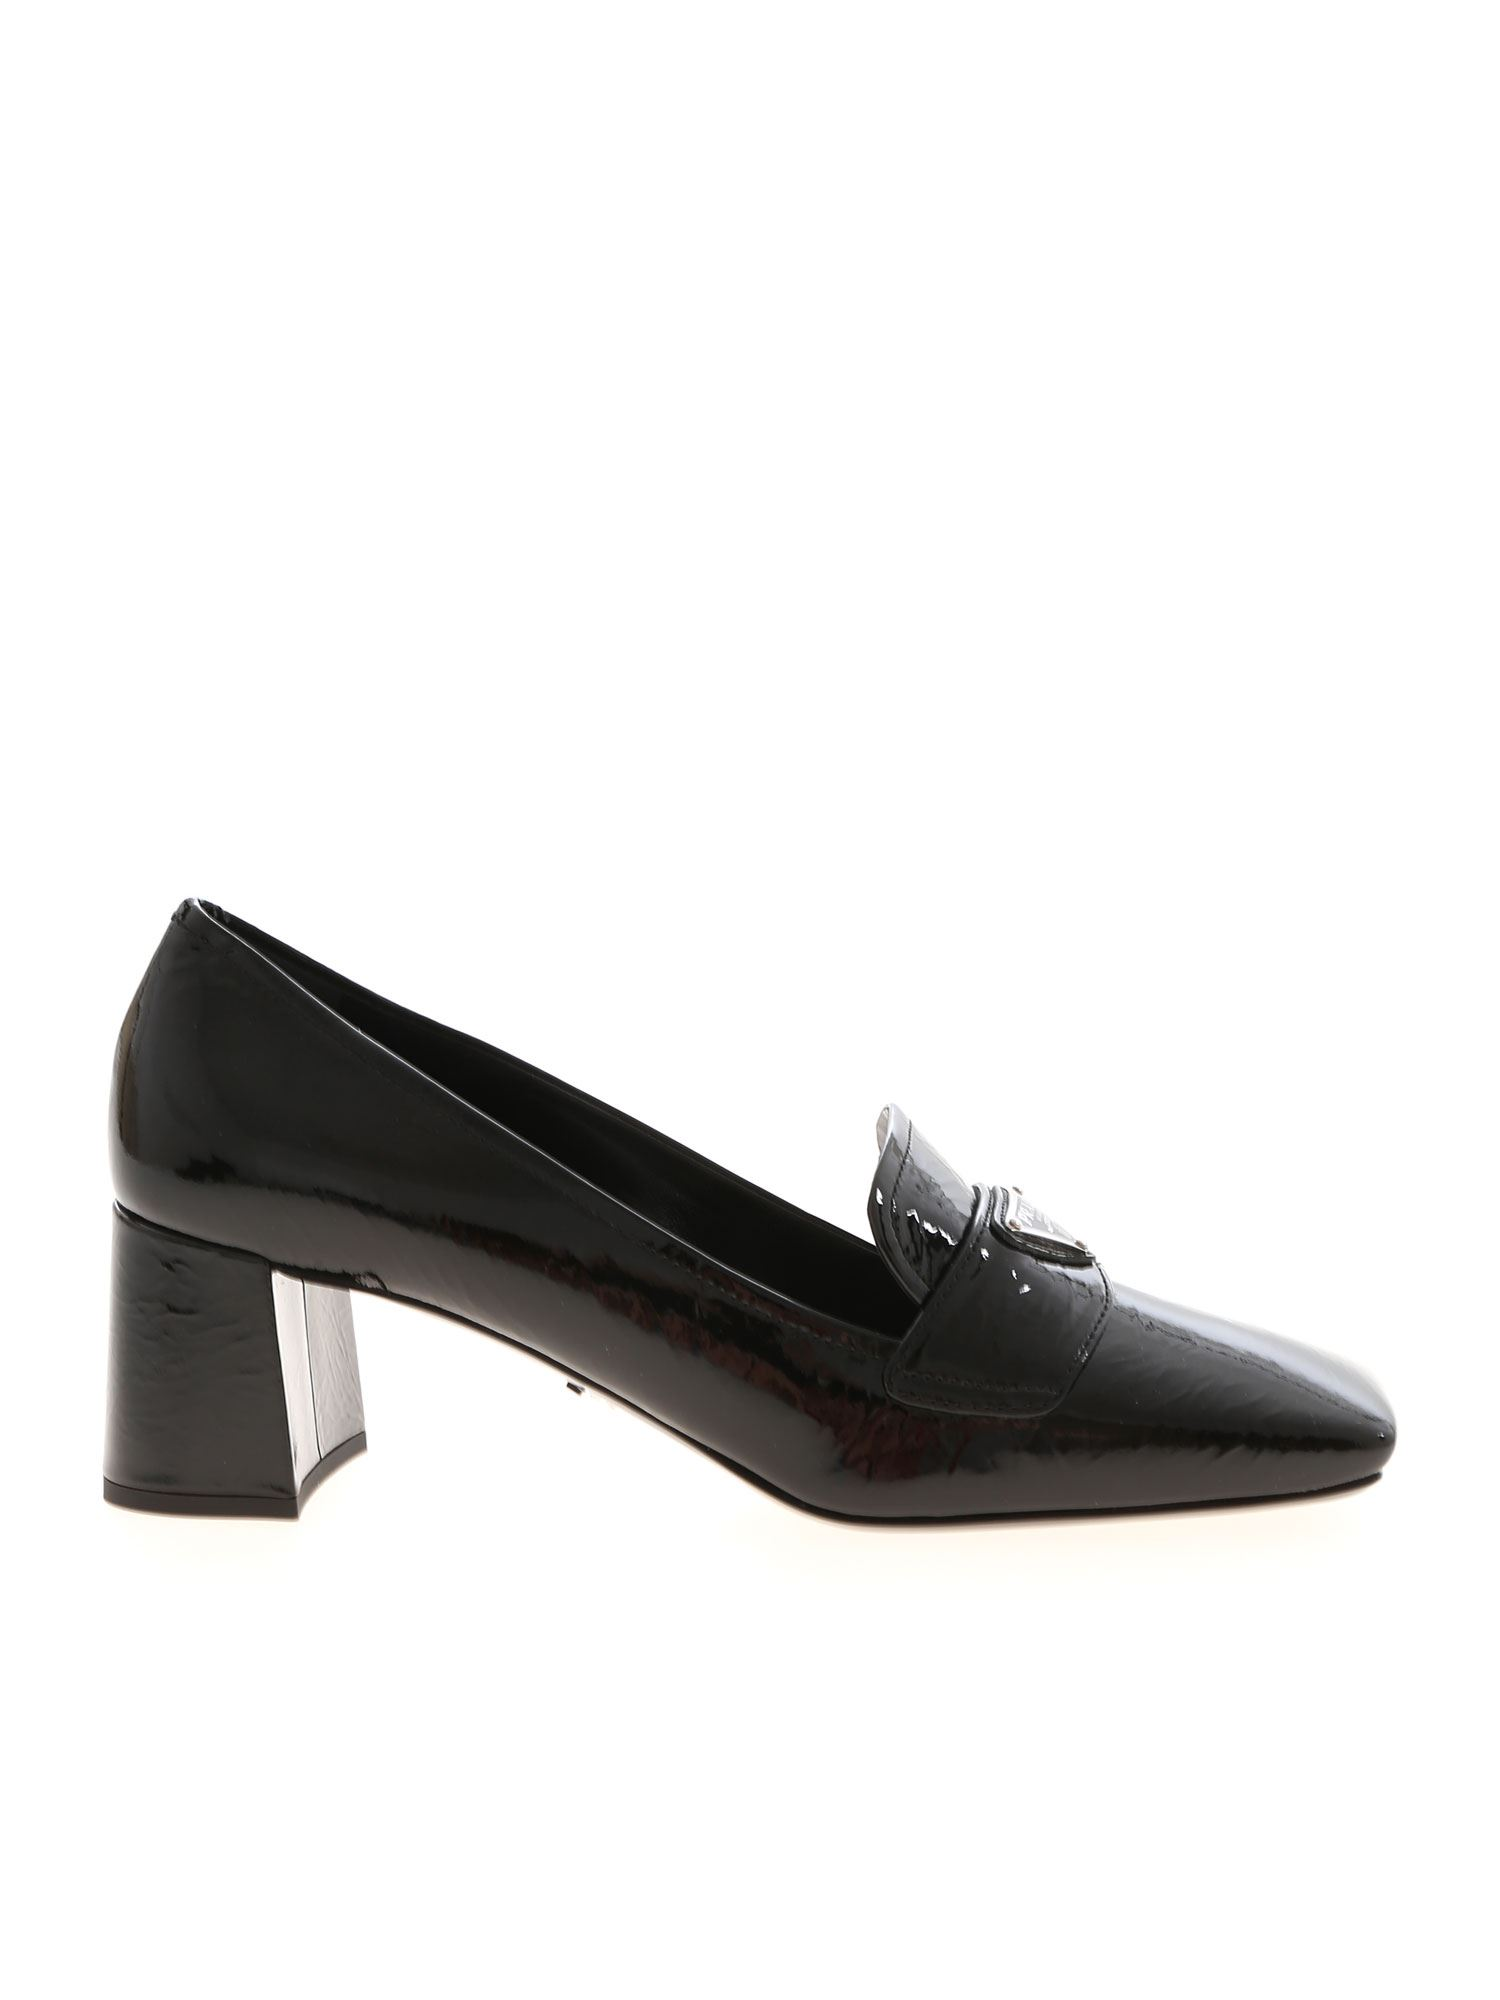 Prada SHINY PUMPS IN BLACK FEATURING LOGO